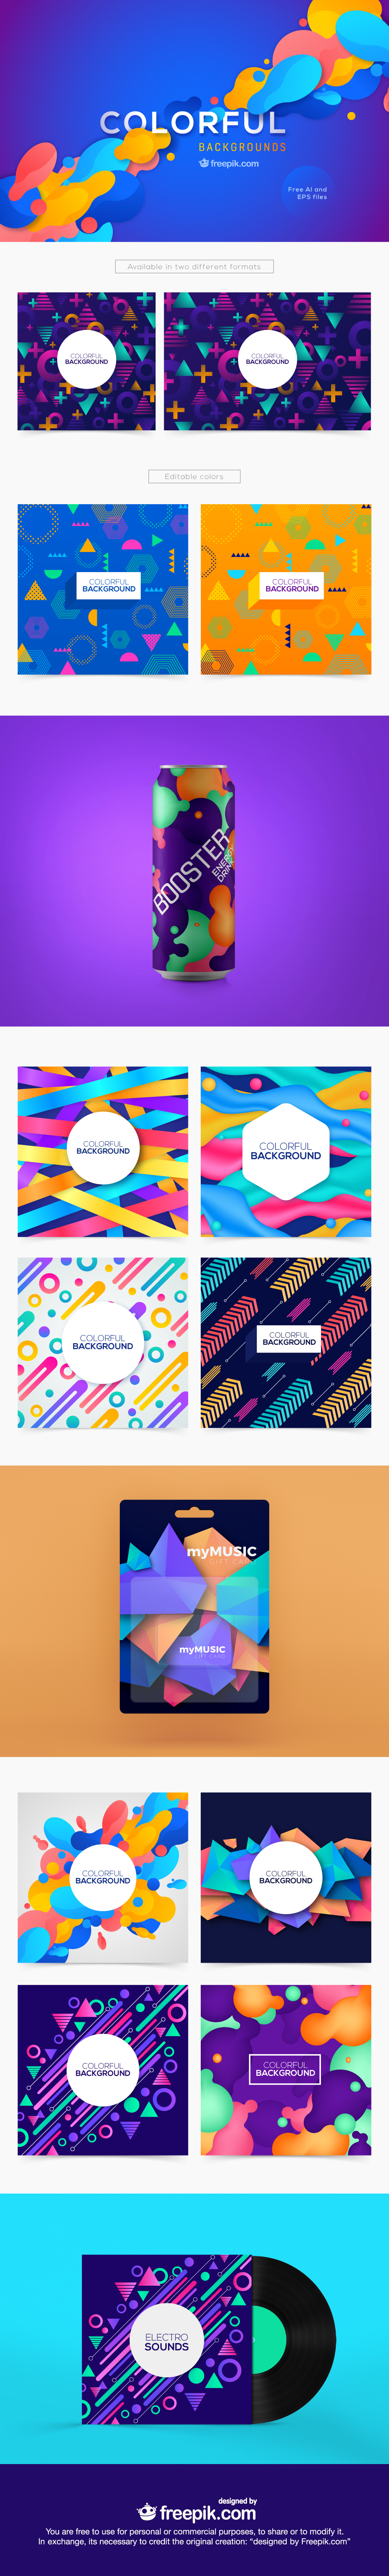 COVER_Colorful_backgrounds-01